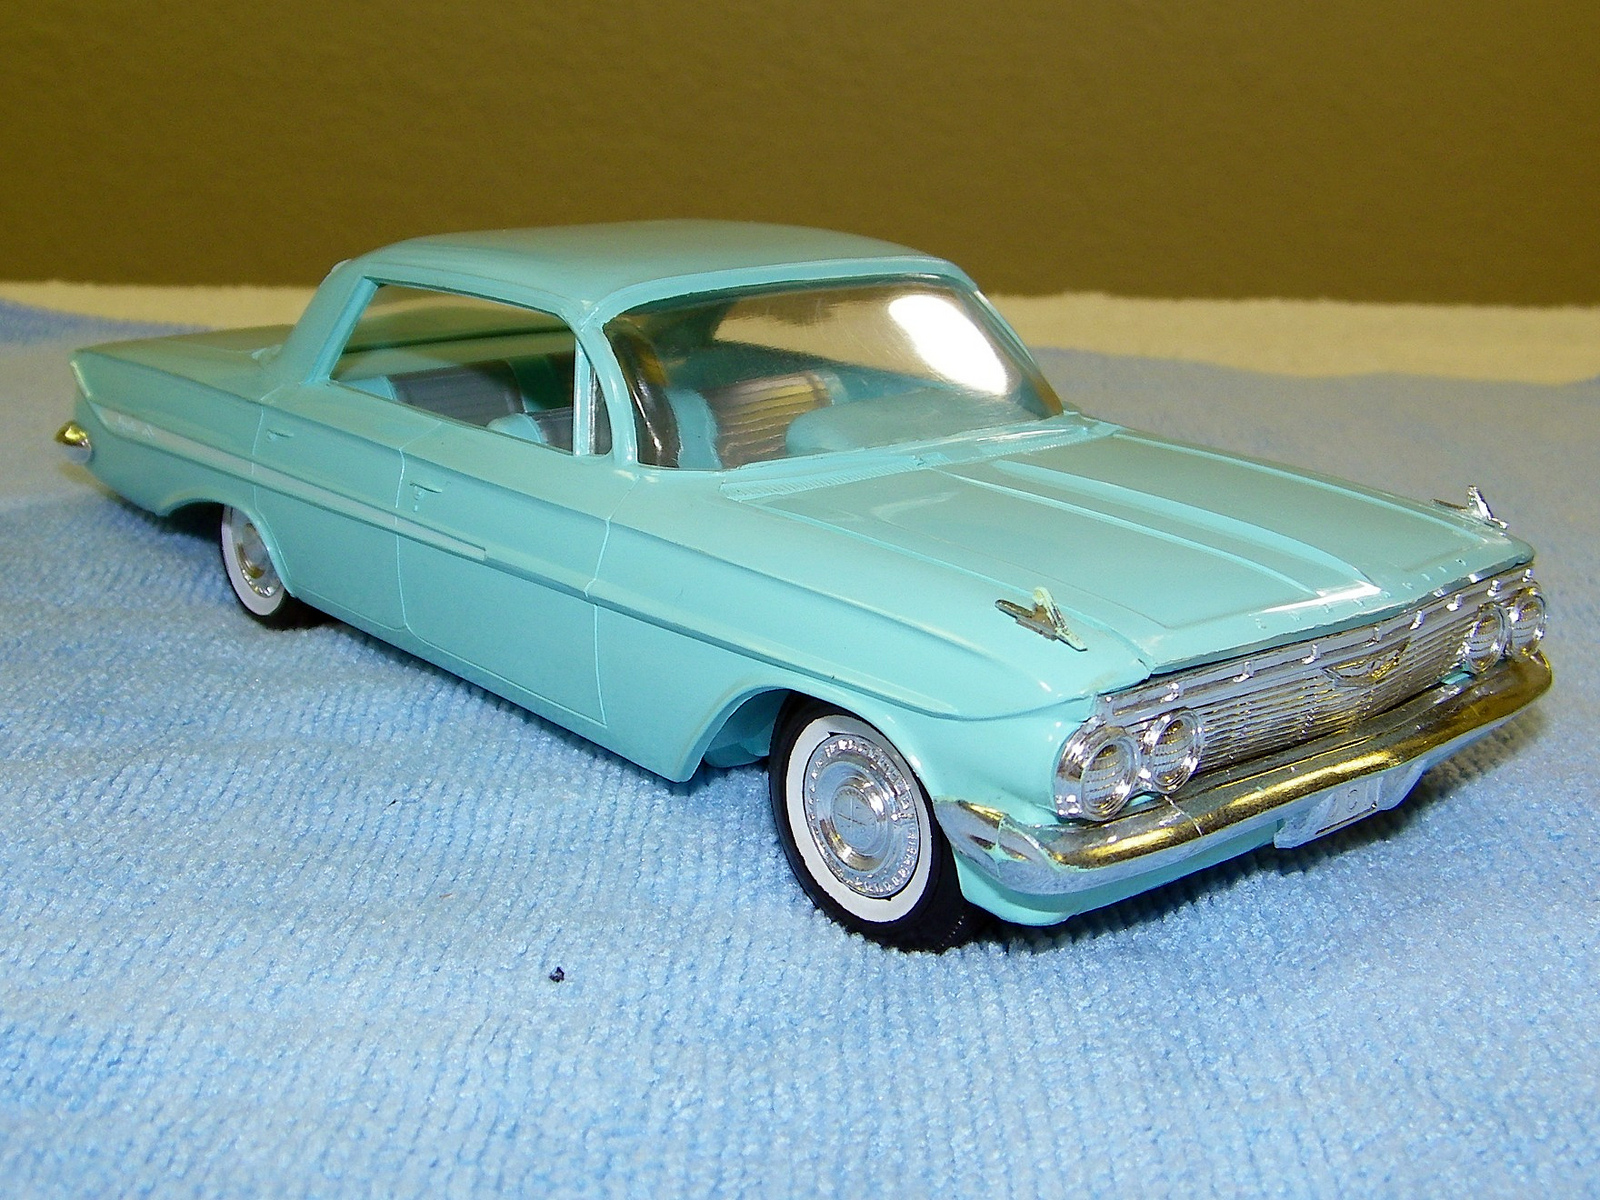 1961 chevrolet impala sport sedan promo model car model. Black Bedroom Furniture Sets. Home Design Ideas